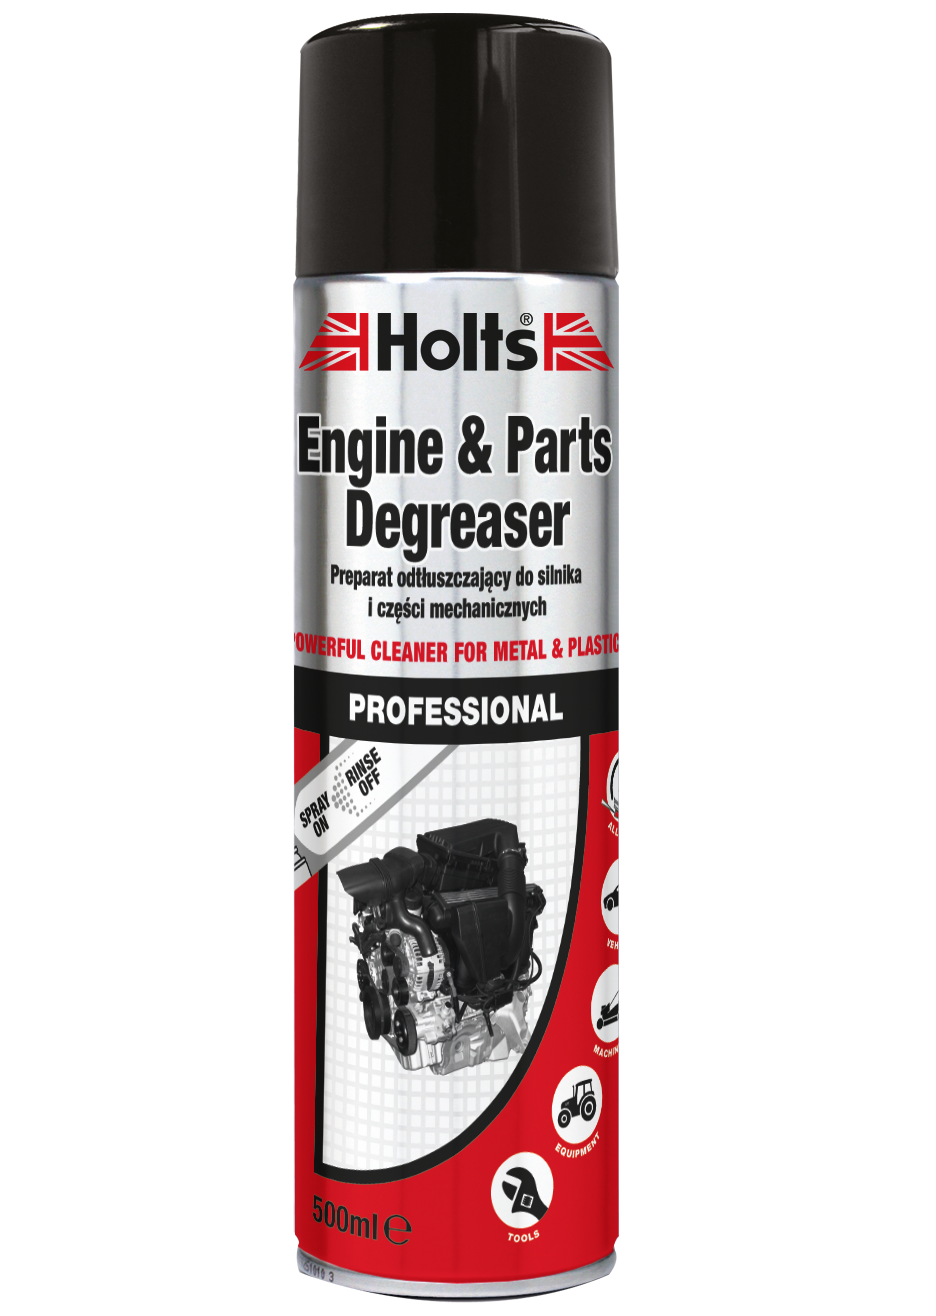 Holts Engine & Parts De-greaser 500ml